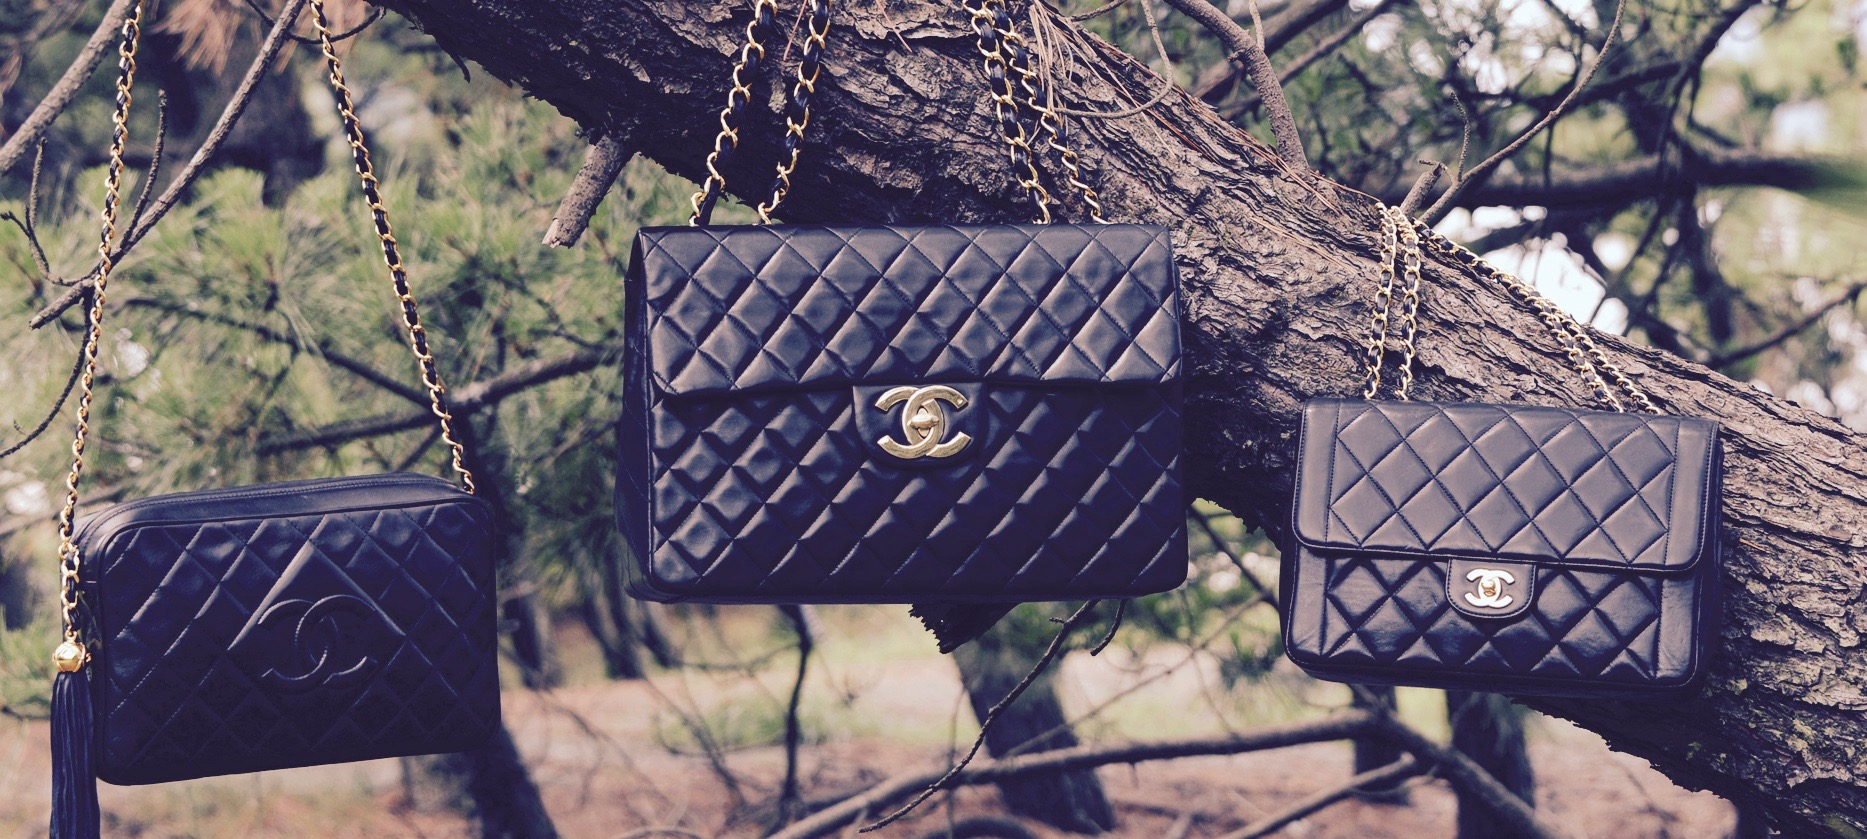 Chanel classic bags hanging on a tree